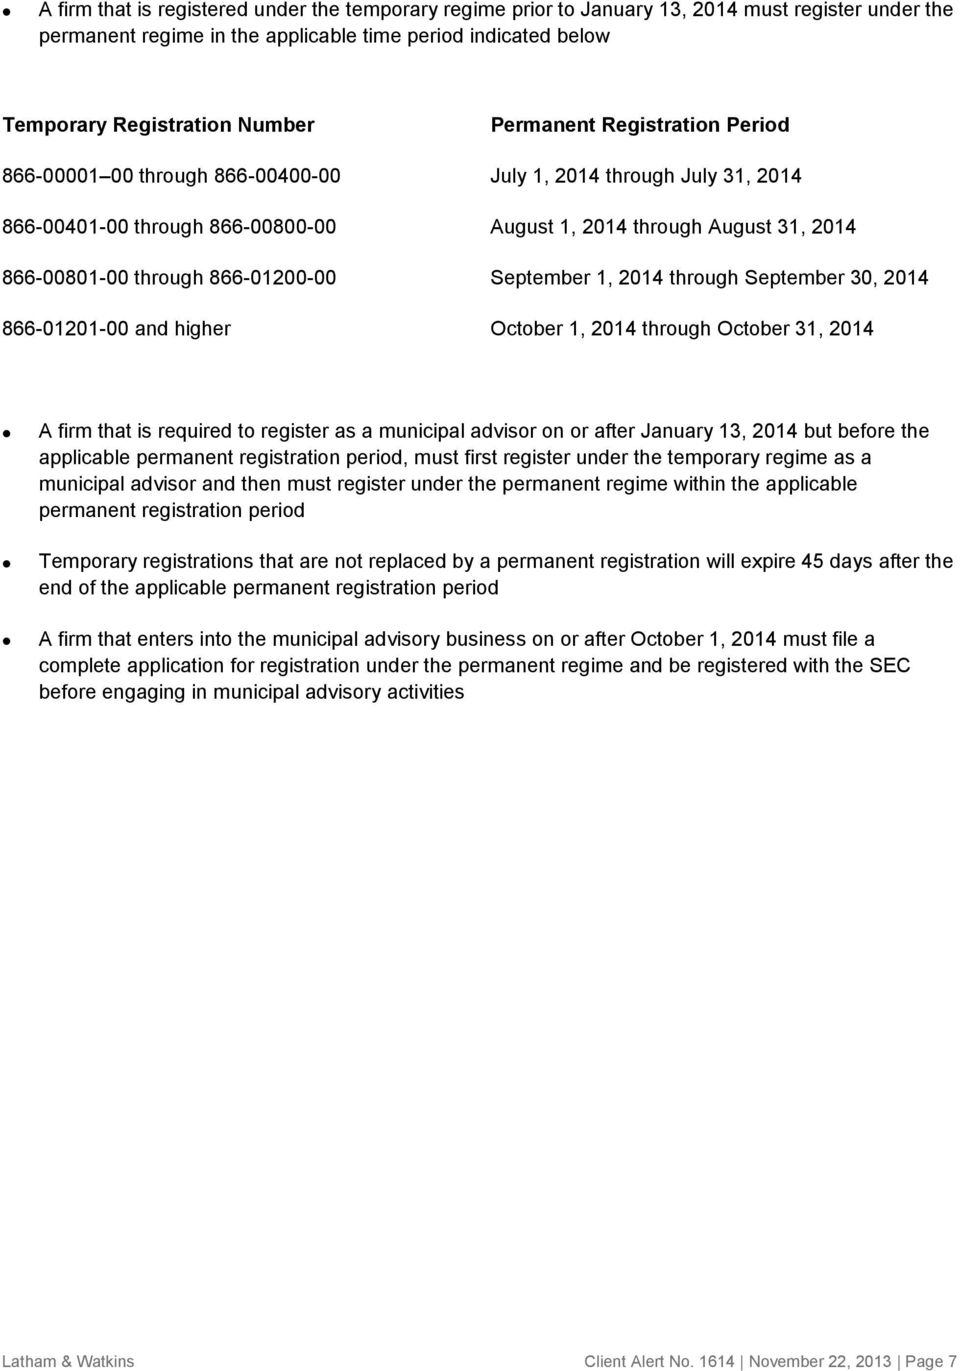 866-01200-00 September 1, 2014 through September 30, 2014 866-01201-00 and higher October 1, 2014 through October 31, 2014 A firm that is required to register as a municipal advisor on or after